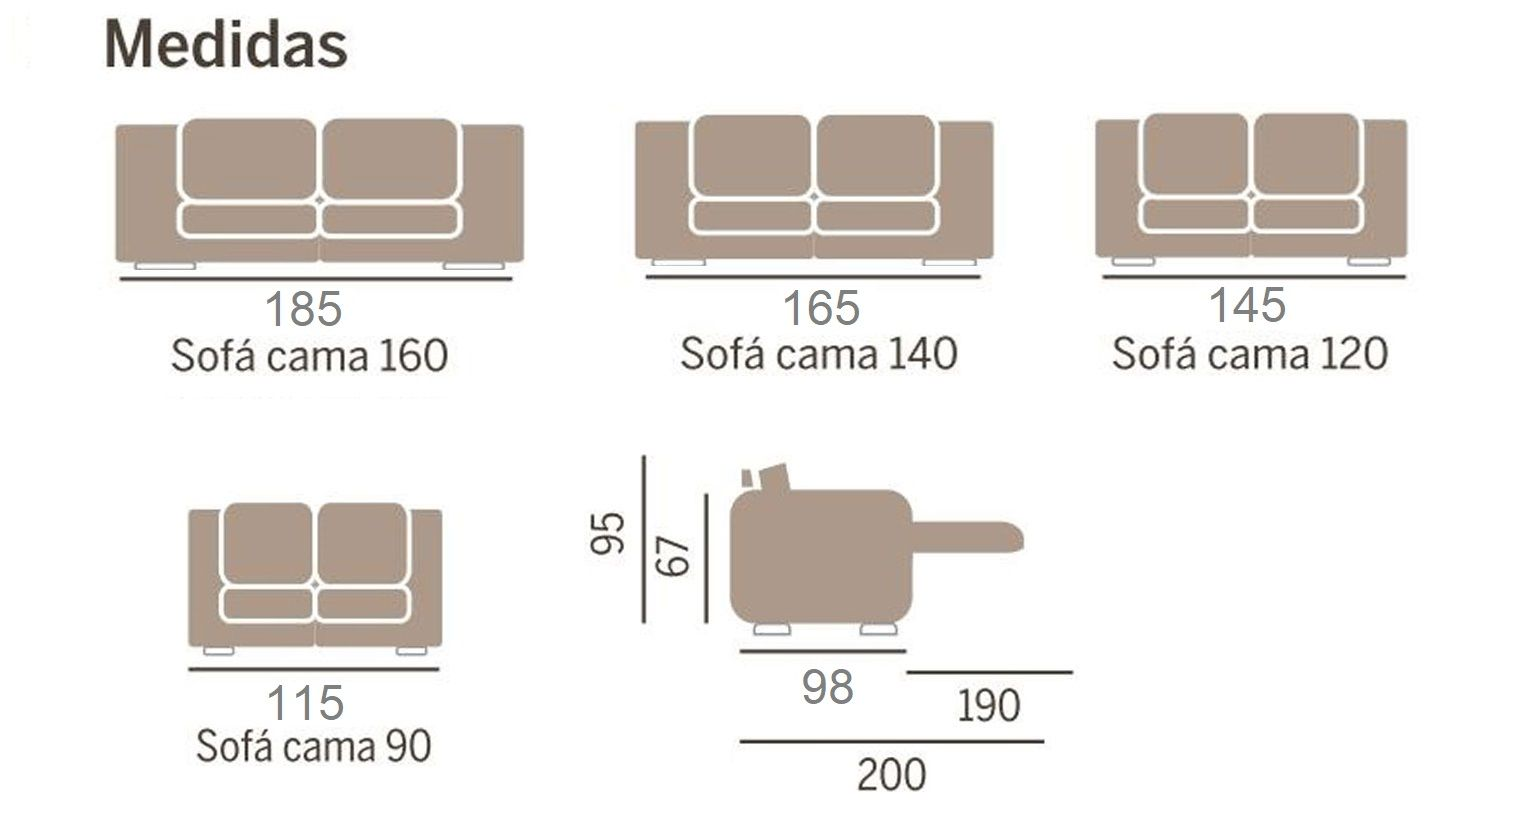 Sof cama vigo sofas cama apertura italiana for Chaise longue 4 plazas baratos